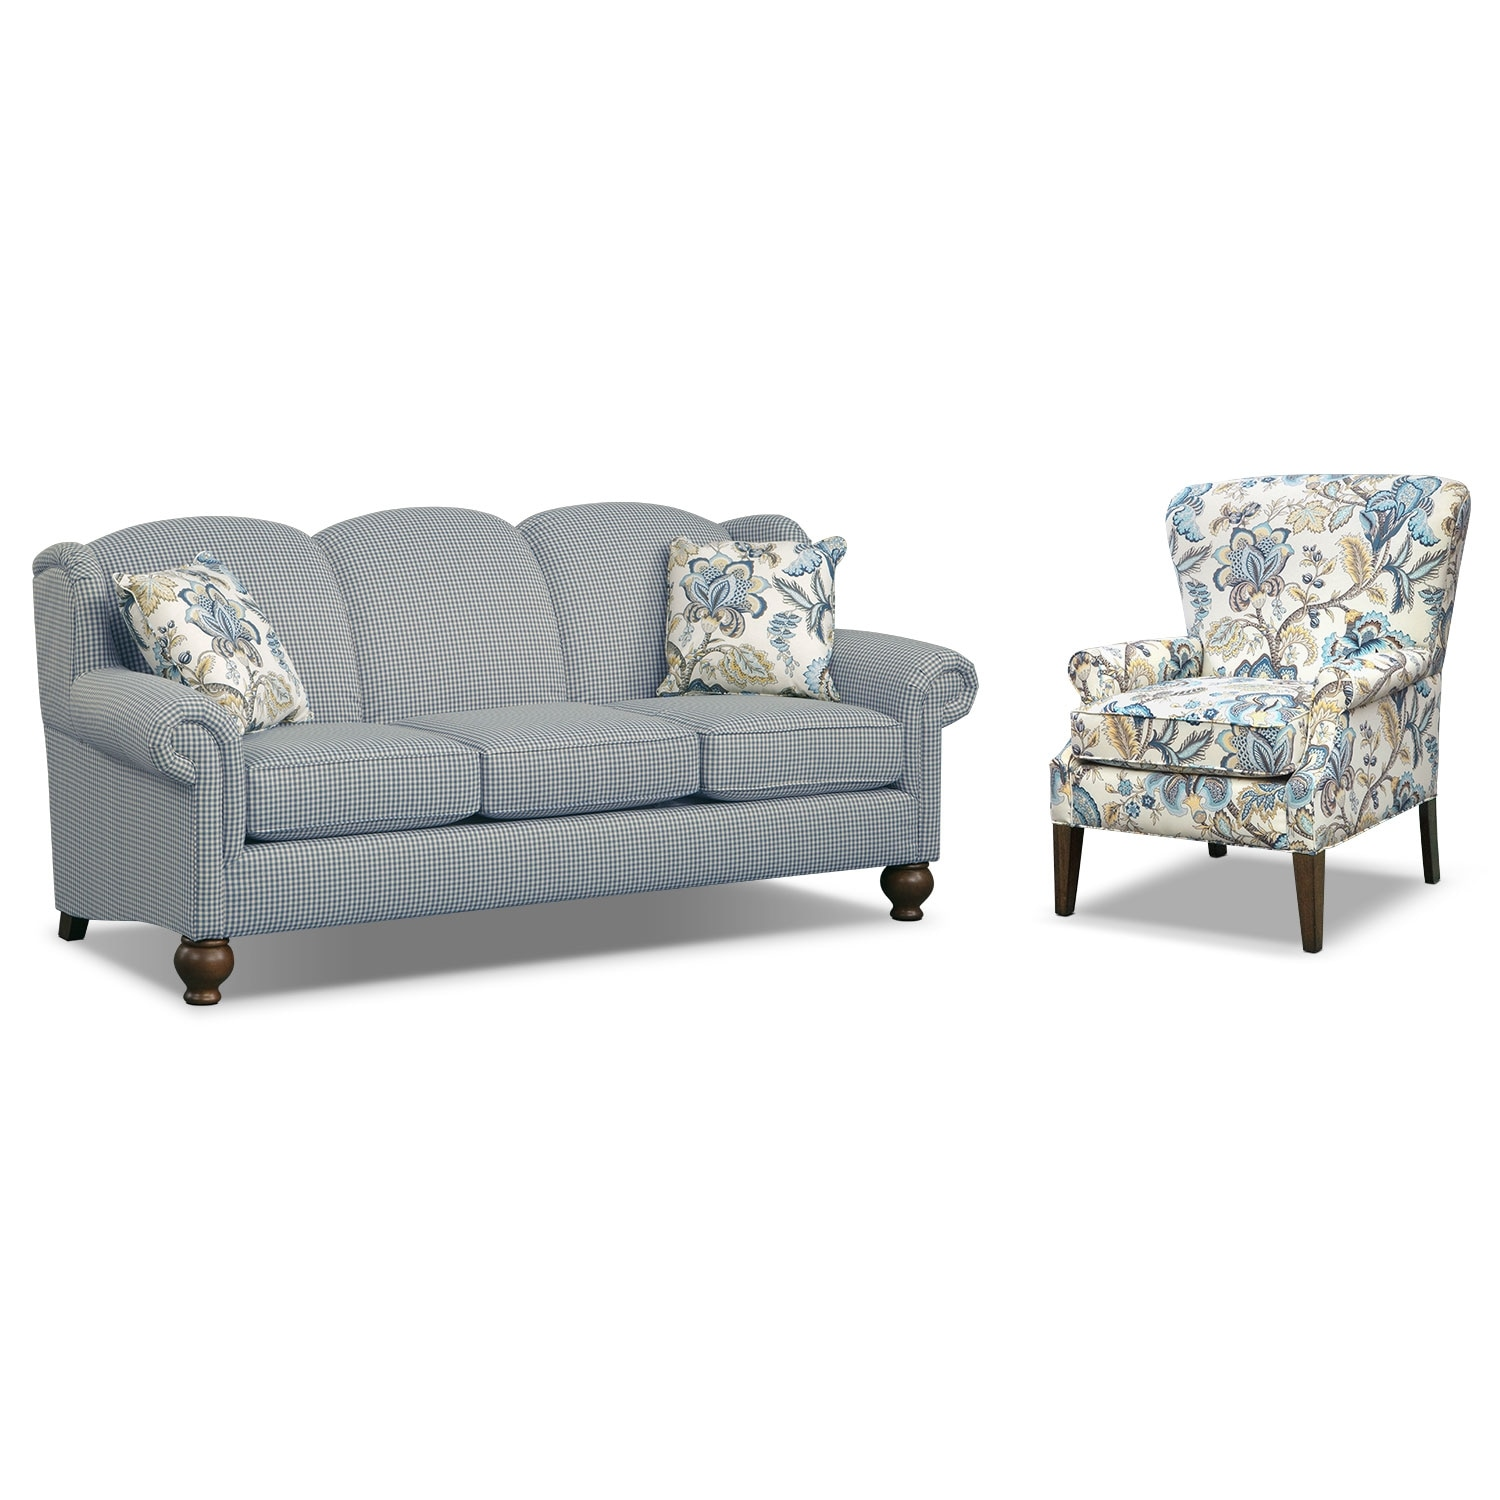 Living Room Furniture - Charlotte III 2 Pc. Living Room w/Accent Chair